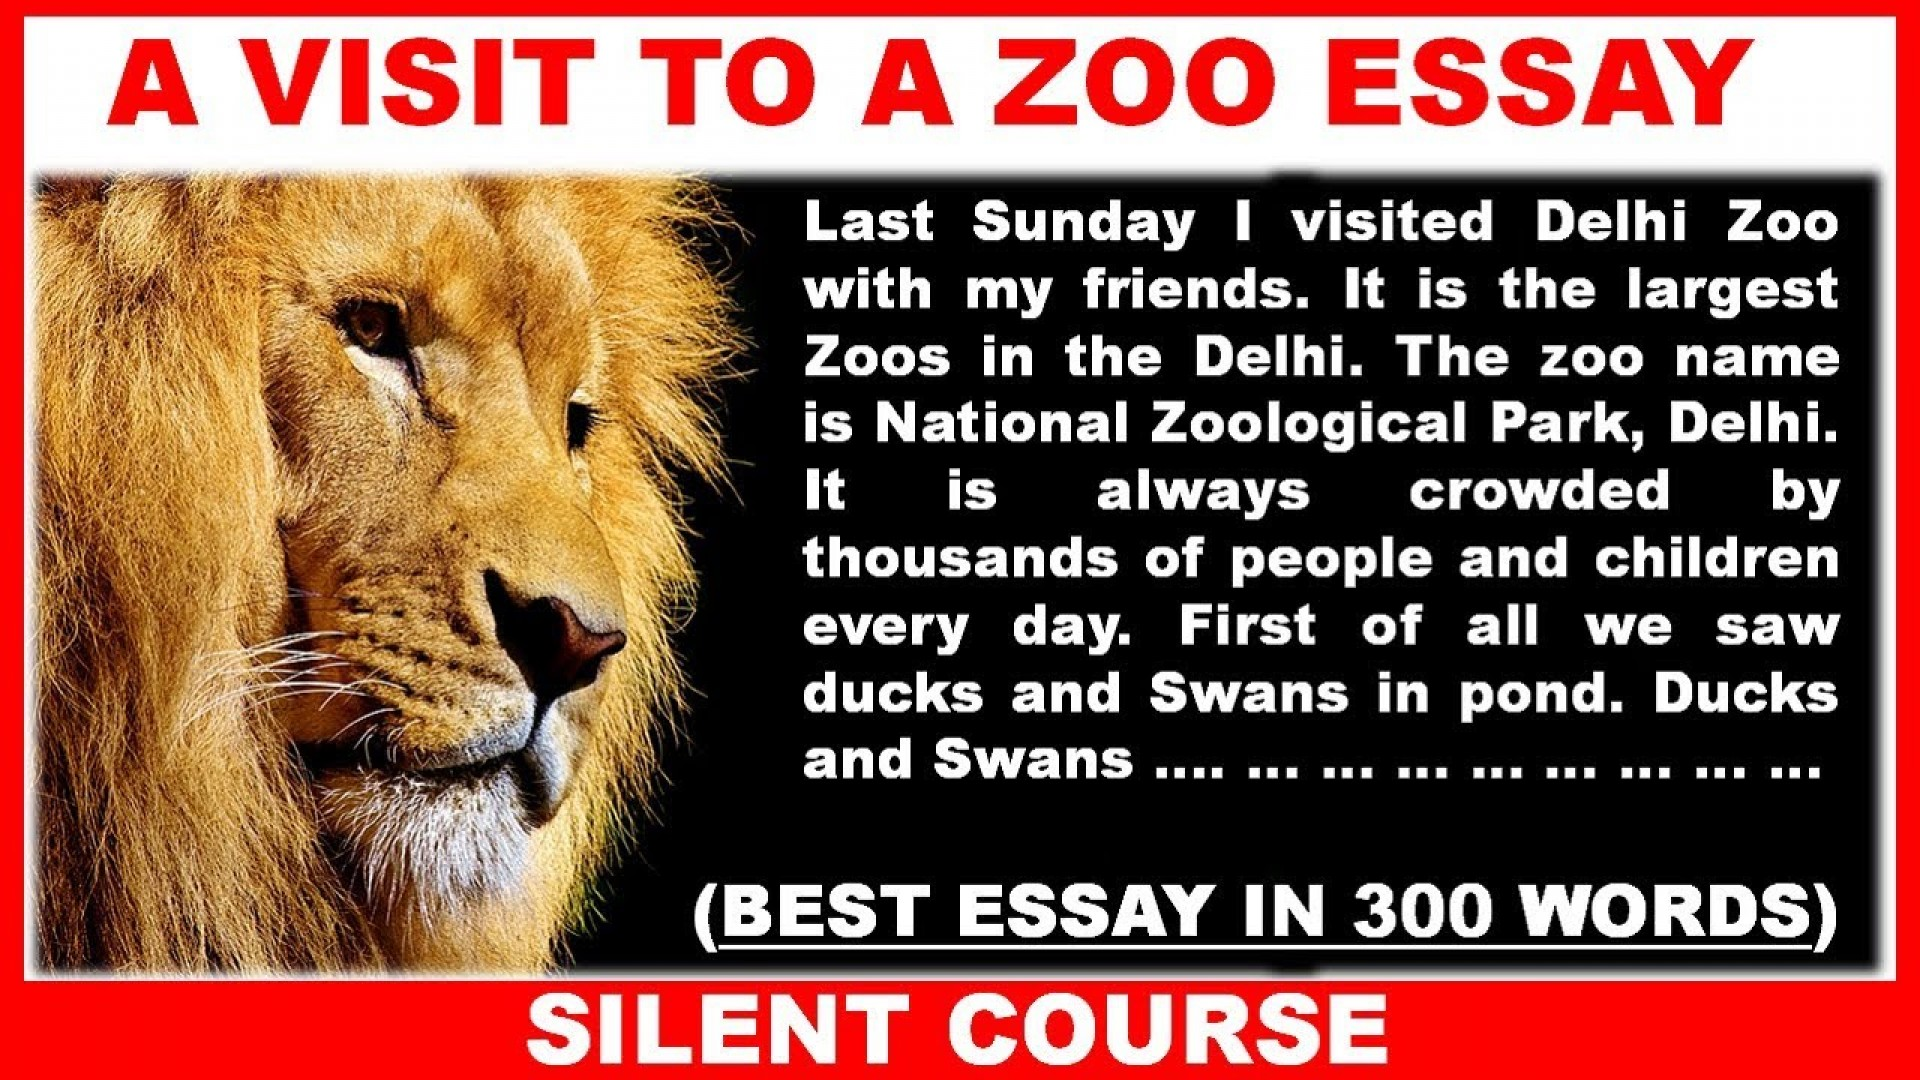 001 Essay Example Maxresdefault On Marvelous Zoo Zoos Are Good Short Zoology 1920